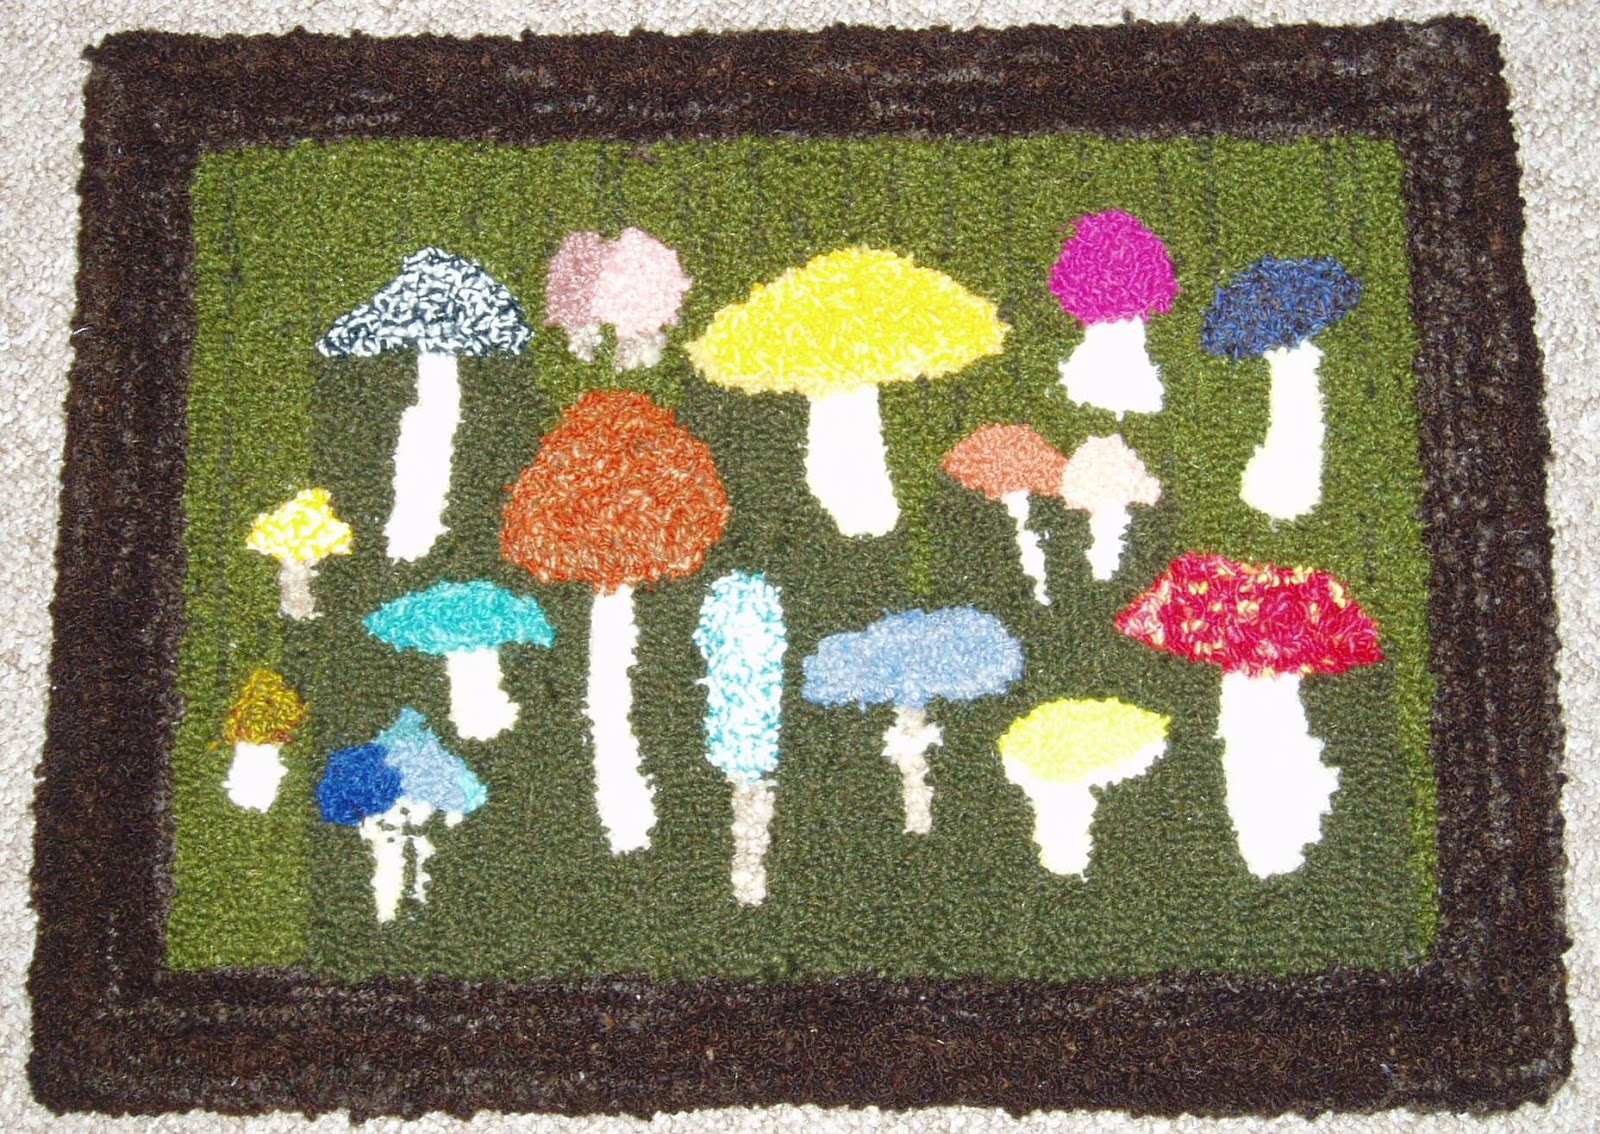 The Toadstool Rug